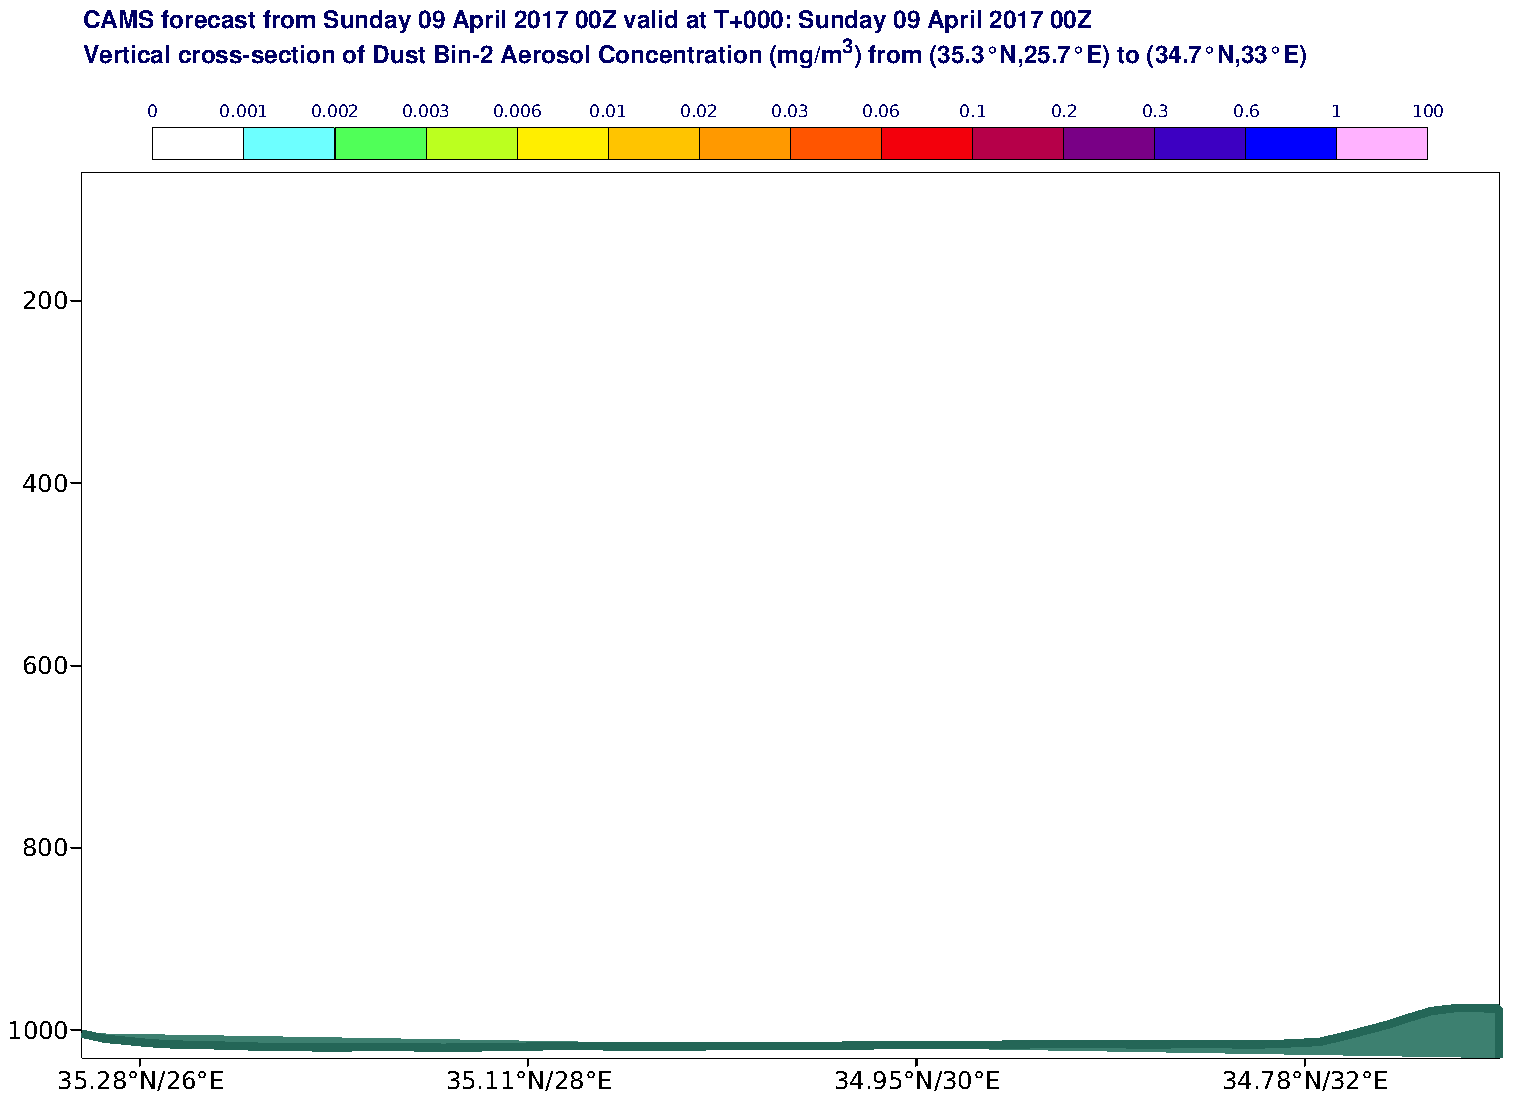 Vertical cross-section of Dust Bin-2 Aerosol Concentration (mg/m3) valid at T0 - 2017-04-09 00:00